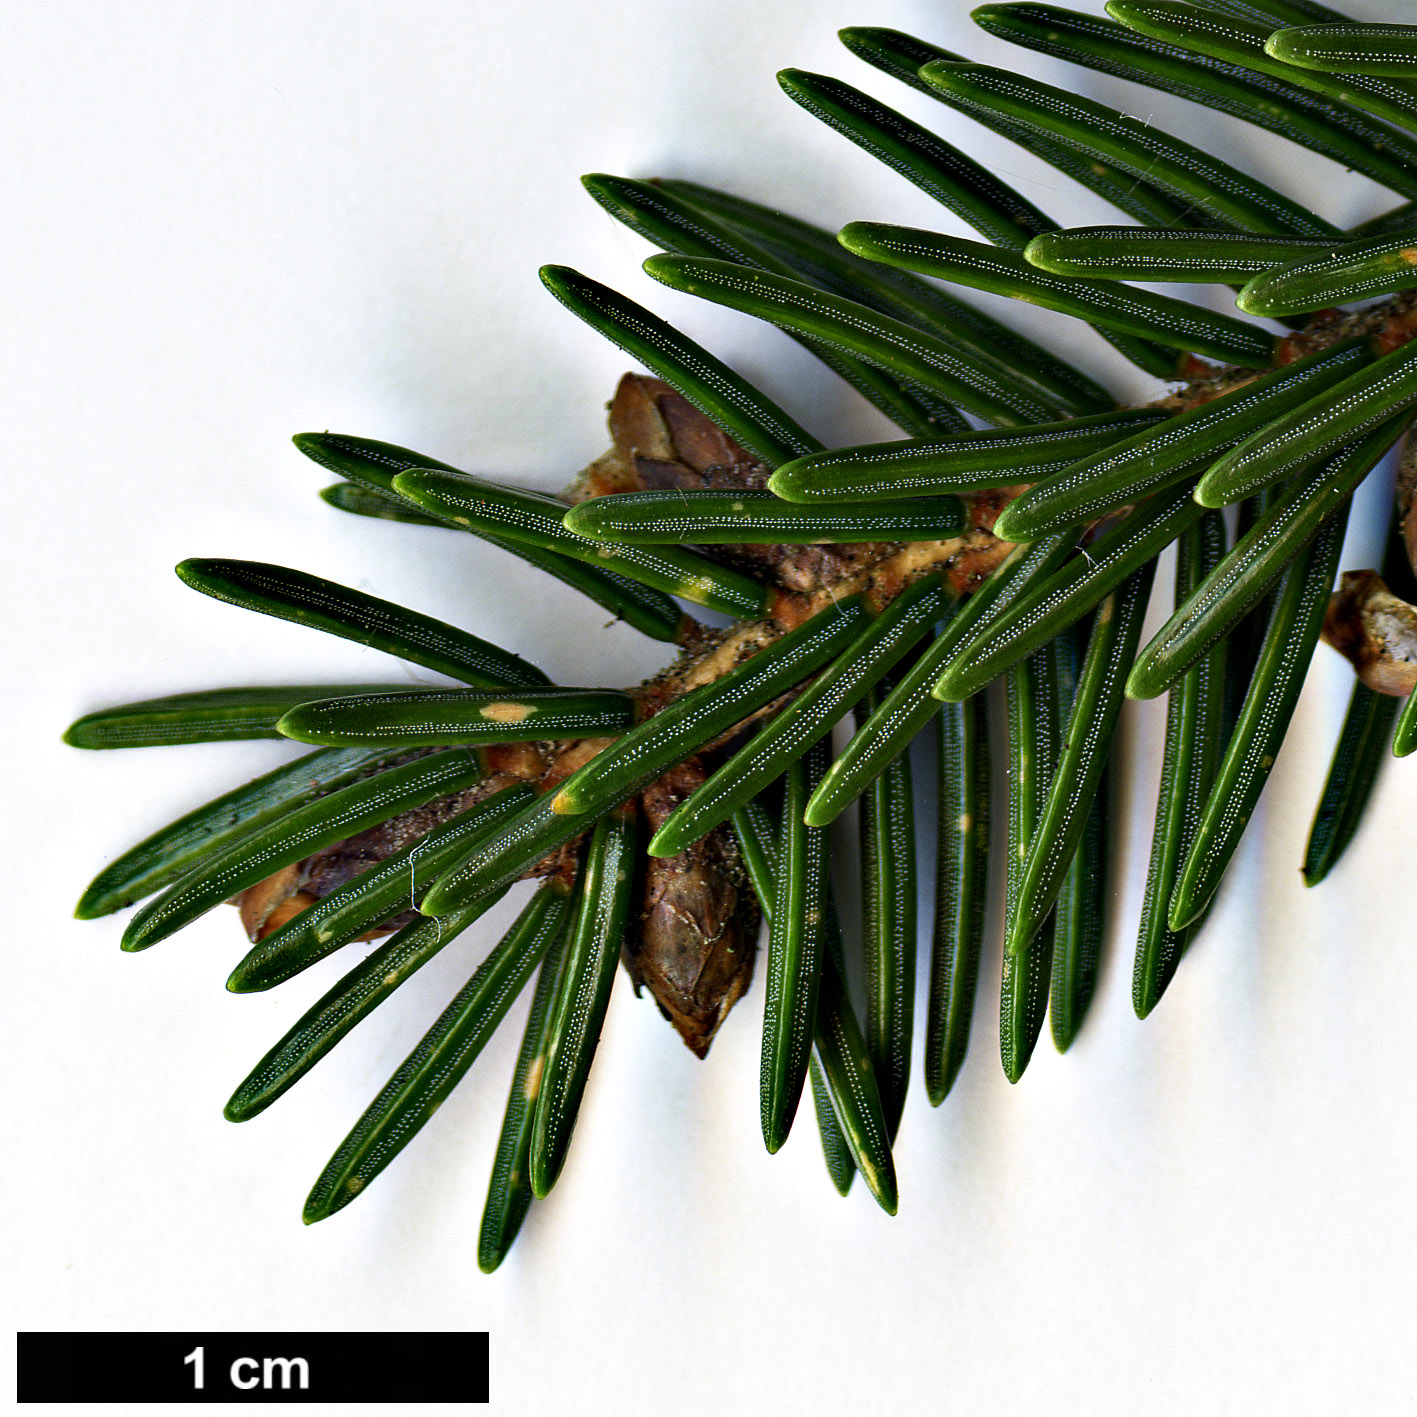 High resolution image: Family: Pinaceae - Genus: Picea - Taxon: maximowiczii